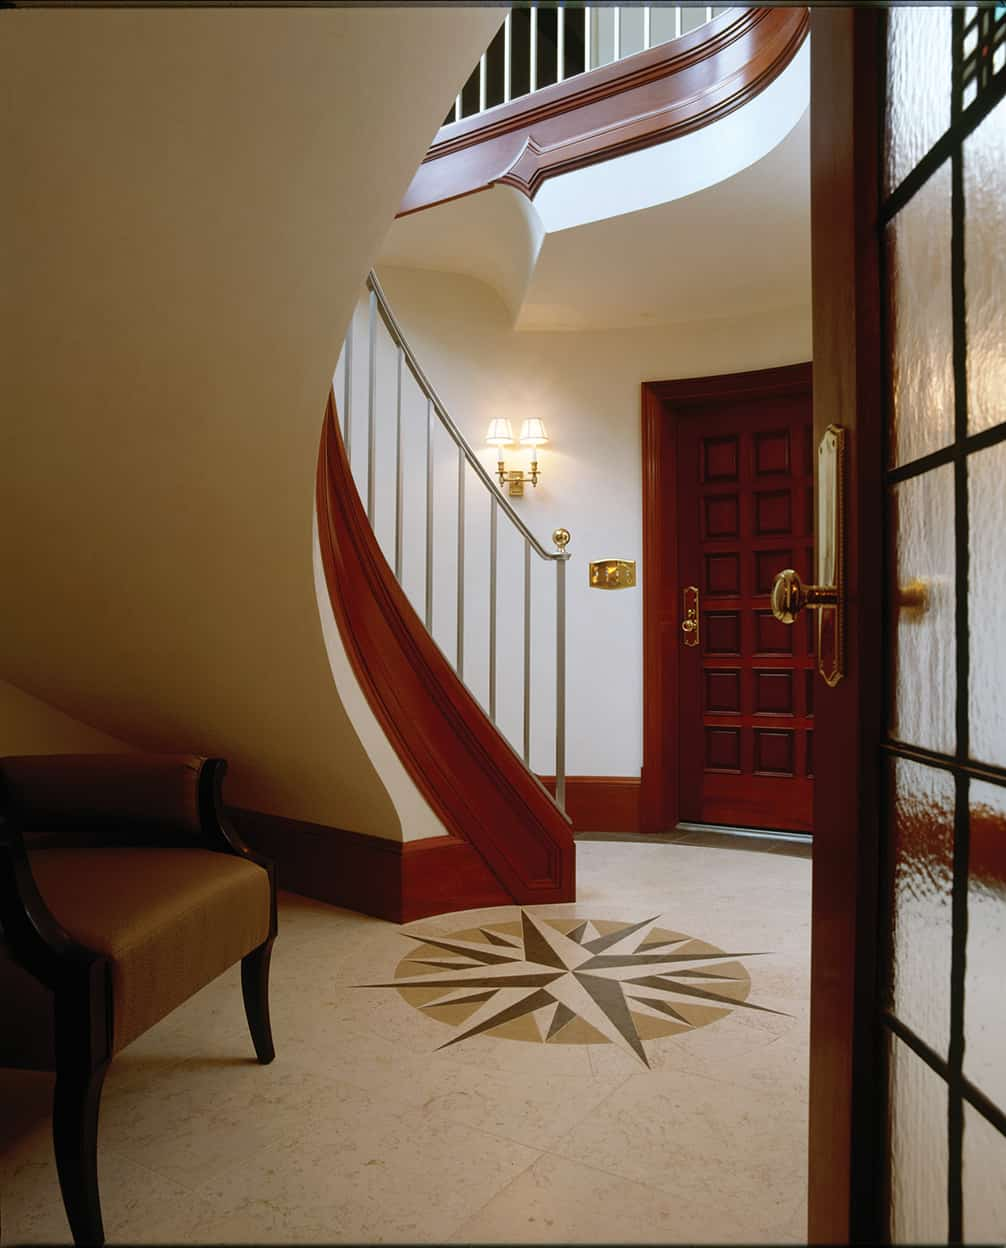 The new entrance tower's sweeping staircase rises above a stone floor with a compass rose medallion. The entranceway has white walls and reddish-brown toned woodwork. The staircase's brushed silver railing contrasts with the brass hardware used elsewhere.